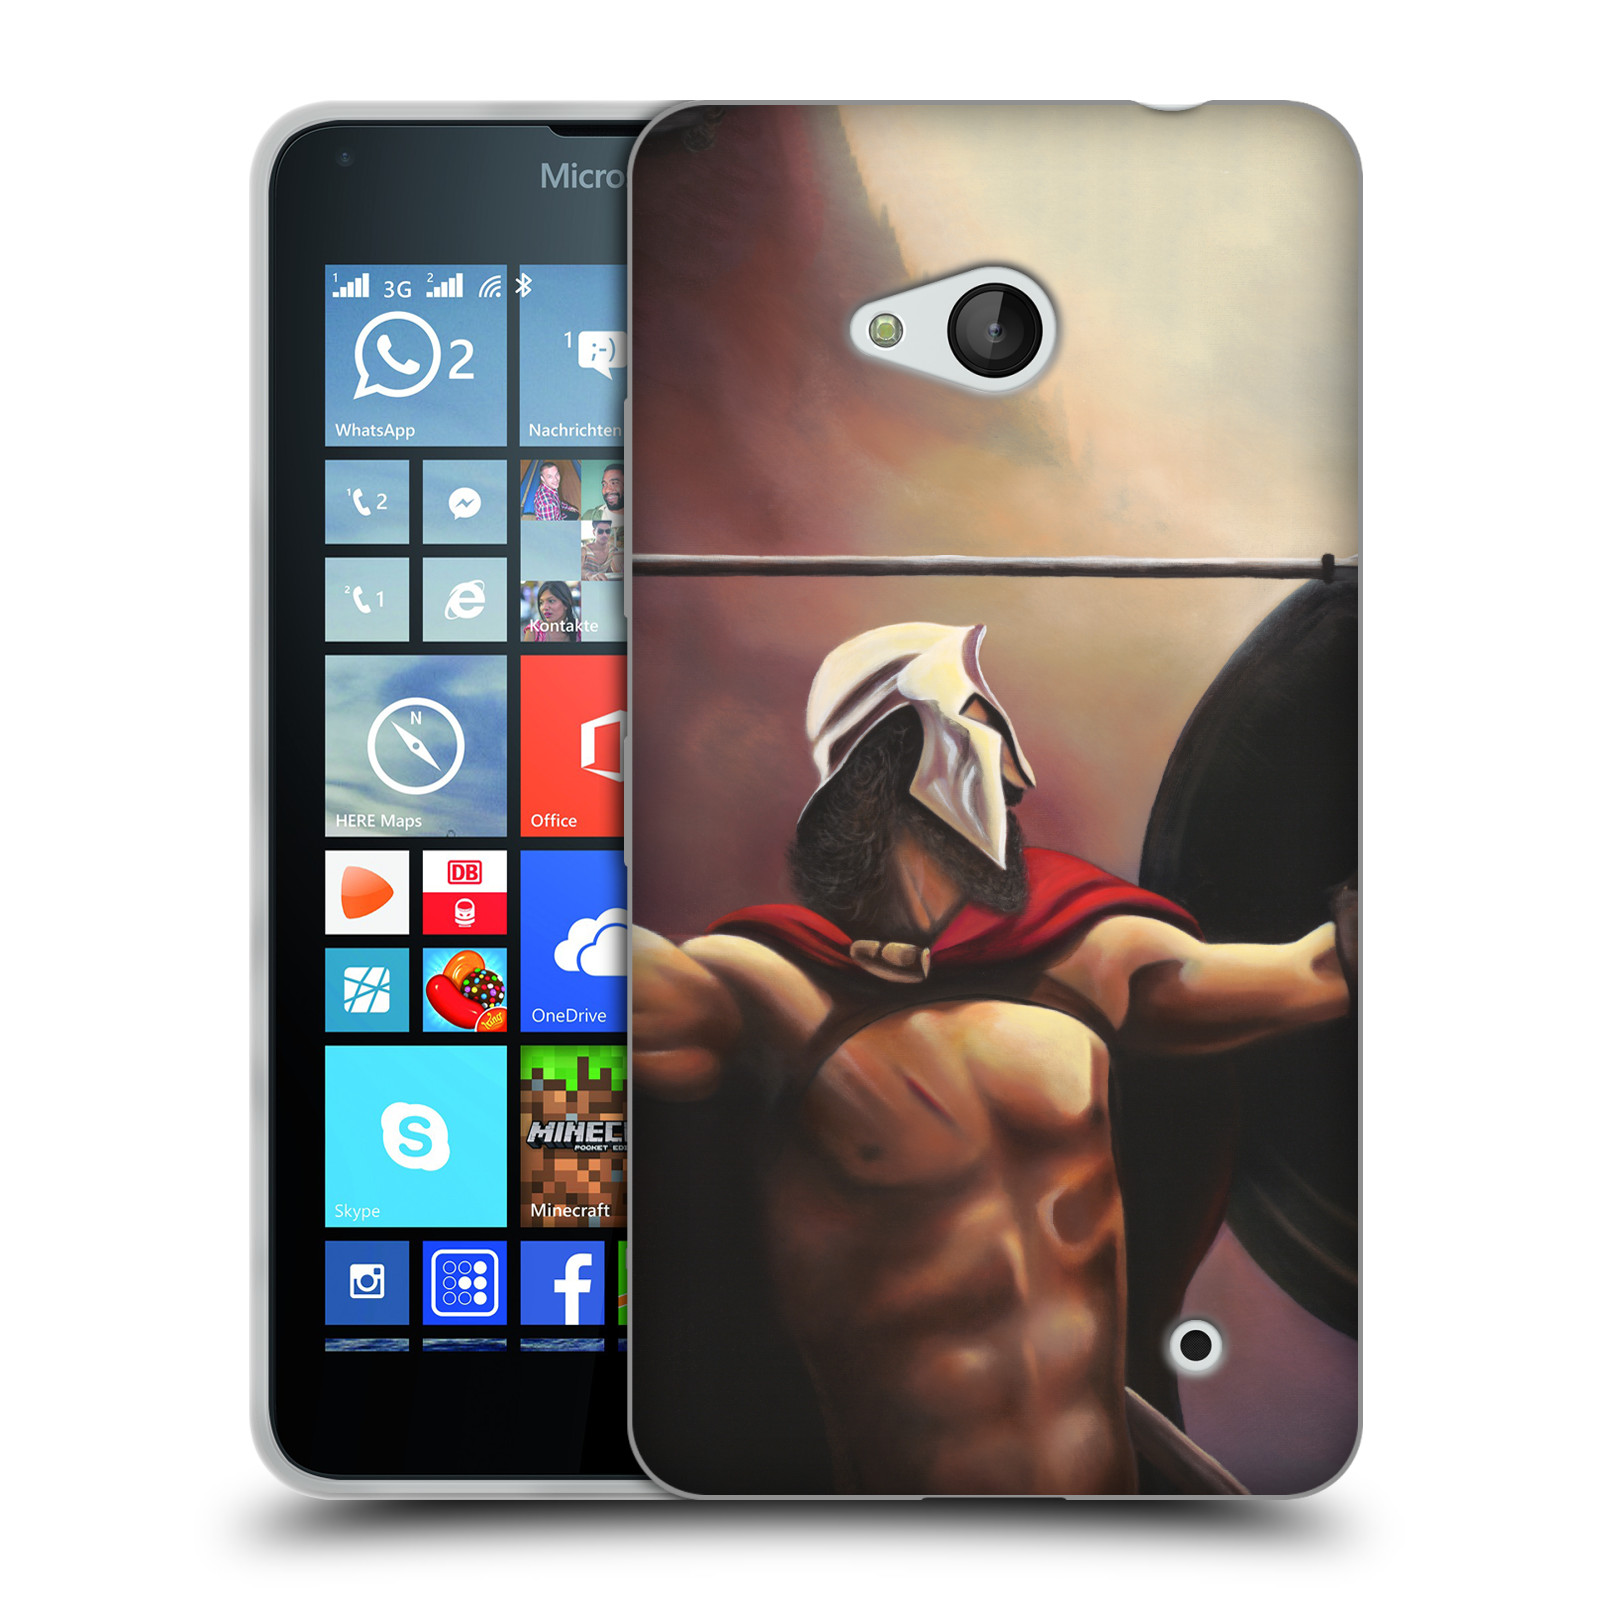 OFFICIAL-GENO-PEOPLES-ART-LIFE-SOFT-GEL-CASE-FOR-NOKIA-PHONES-1